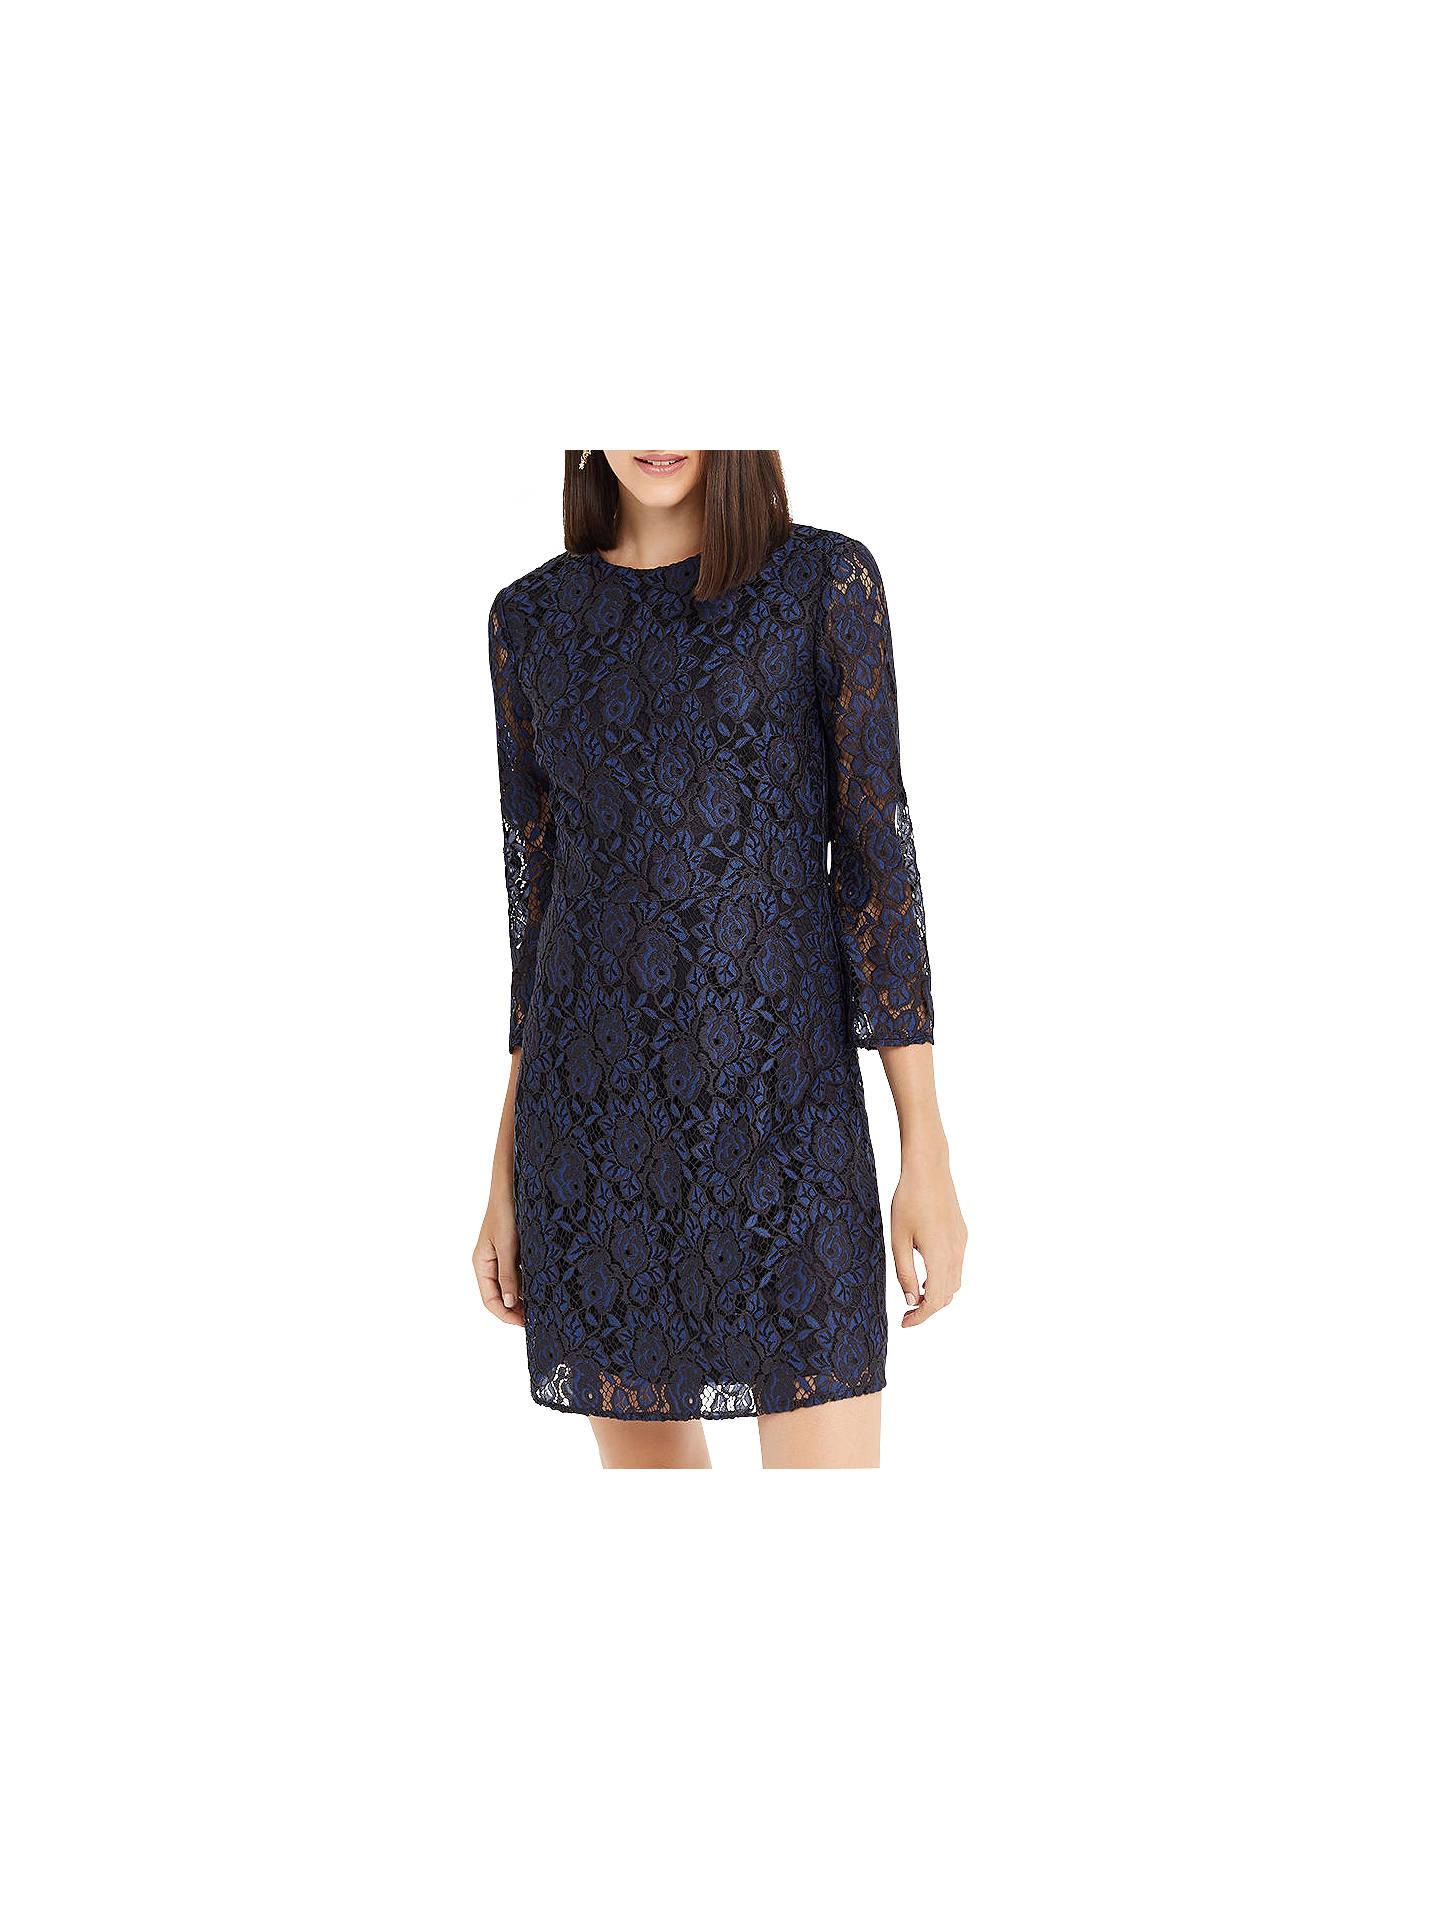 57e5bc684362 Buy Oasis NTU Two Tone Lace Shift Dress, Blue, 6 Online at johnlewis.